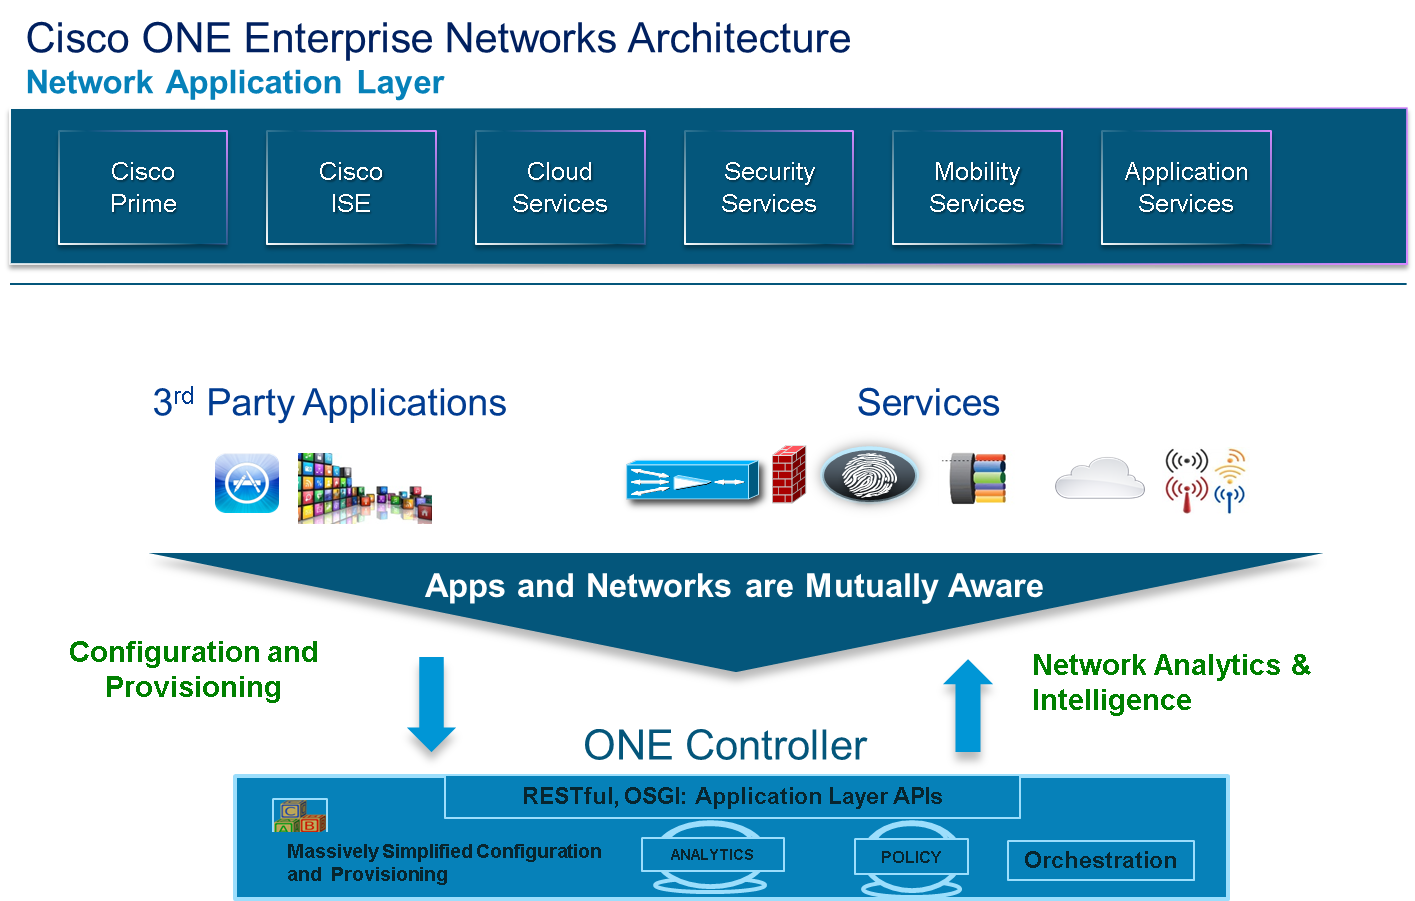 Figure 3: Network Application Layer of Cisco ONE Enterprise Networks Architecture